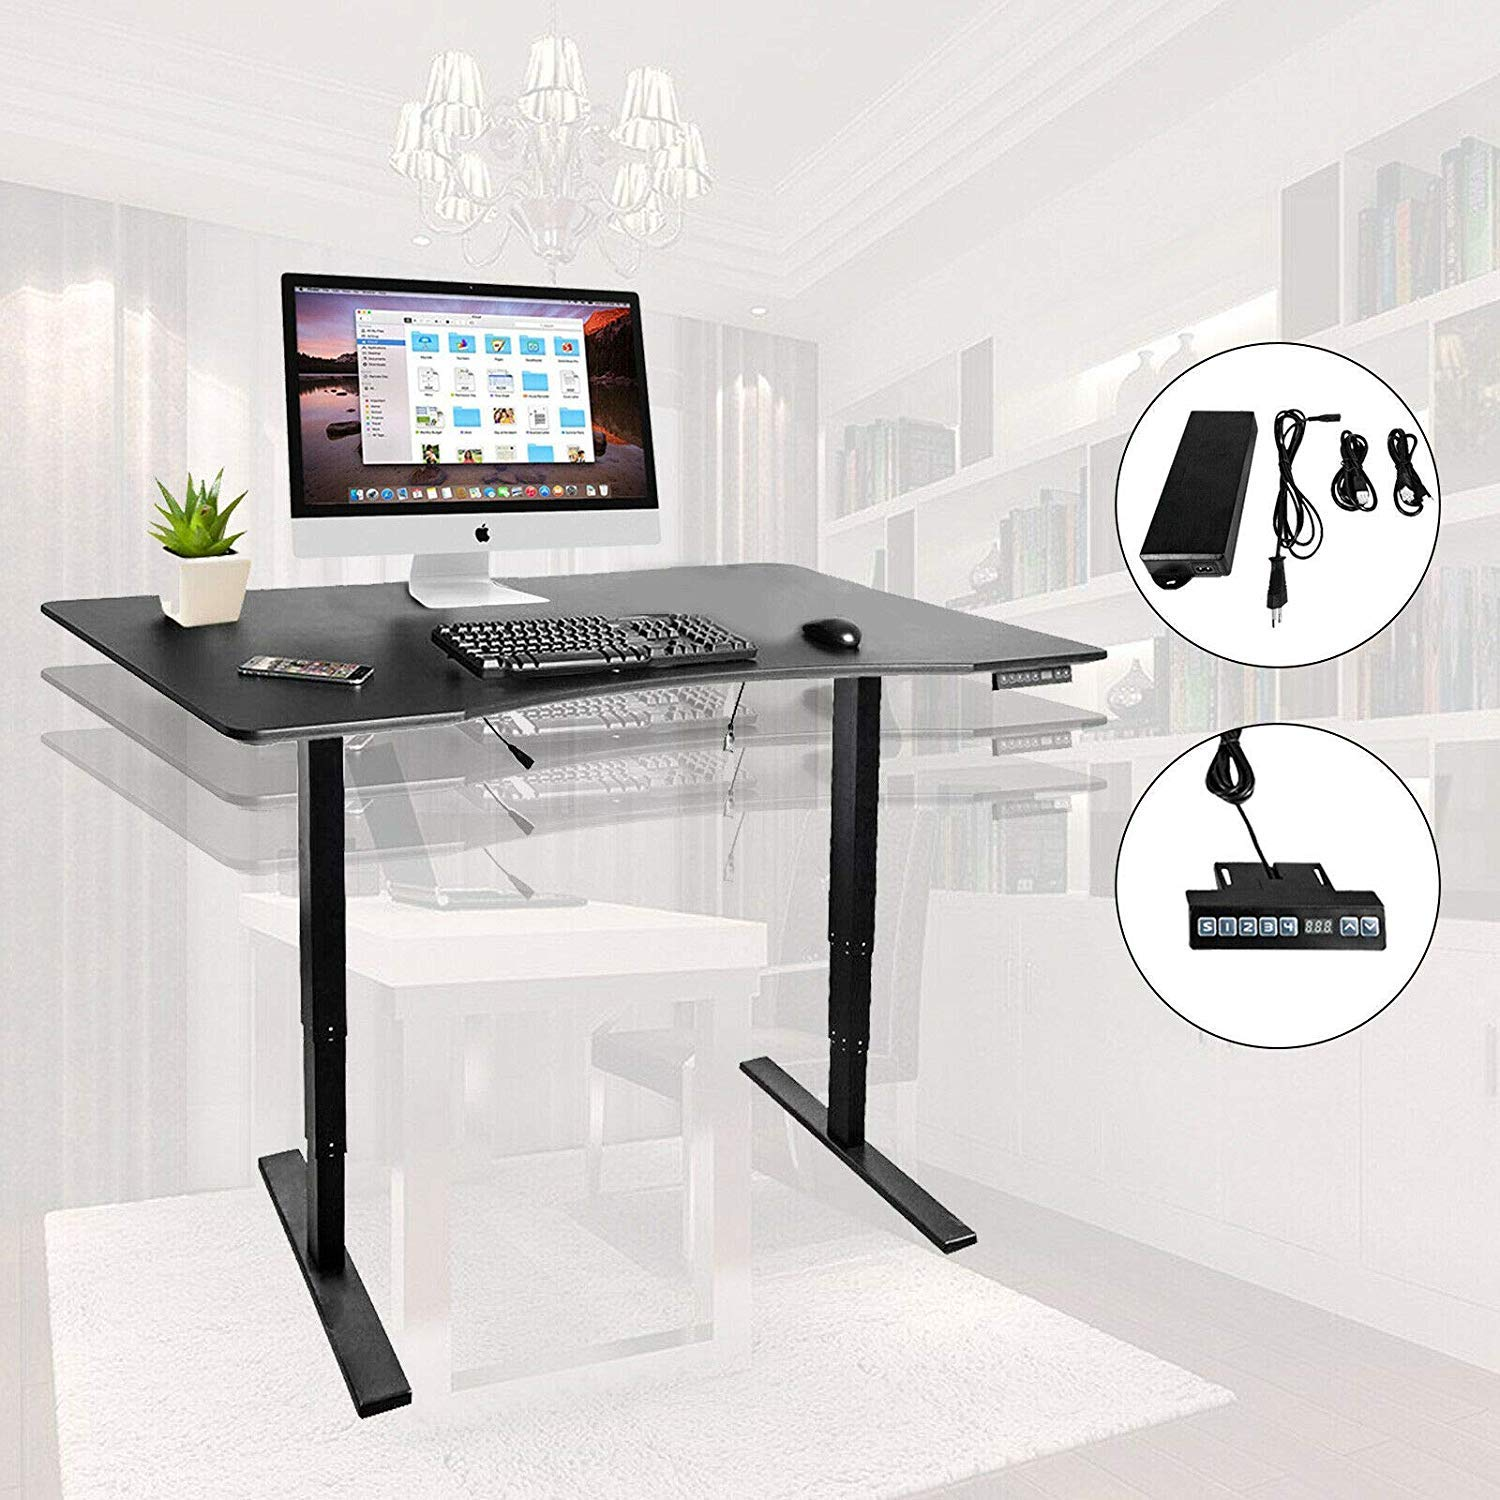 3-Stage Standing Up Desk  Electric Stand Up Desk Frame/Dual Synchronous Motor ergonomic with Memory Control